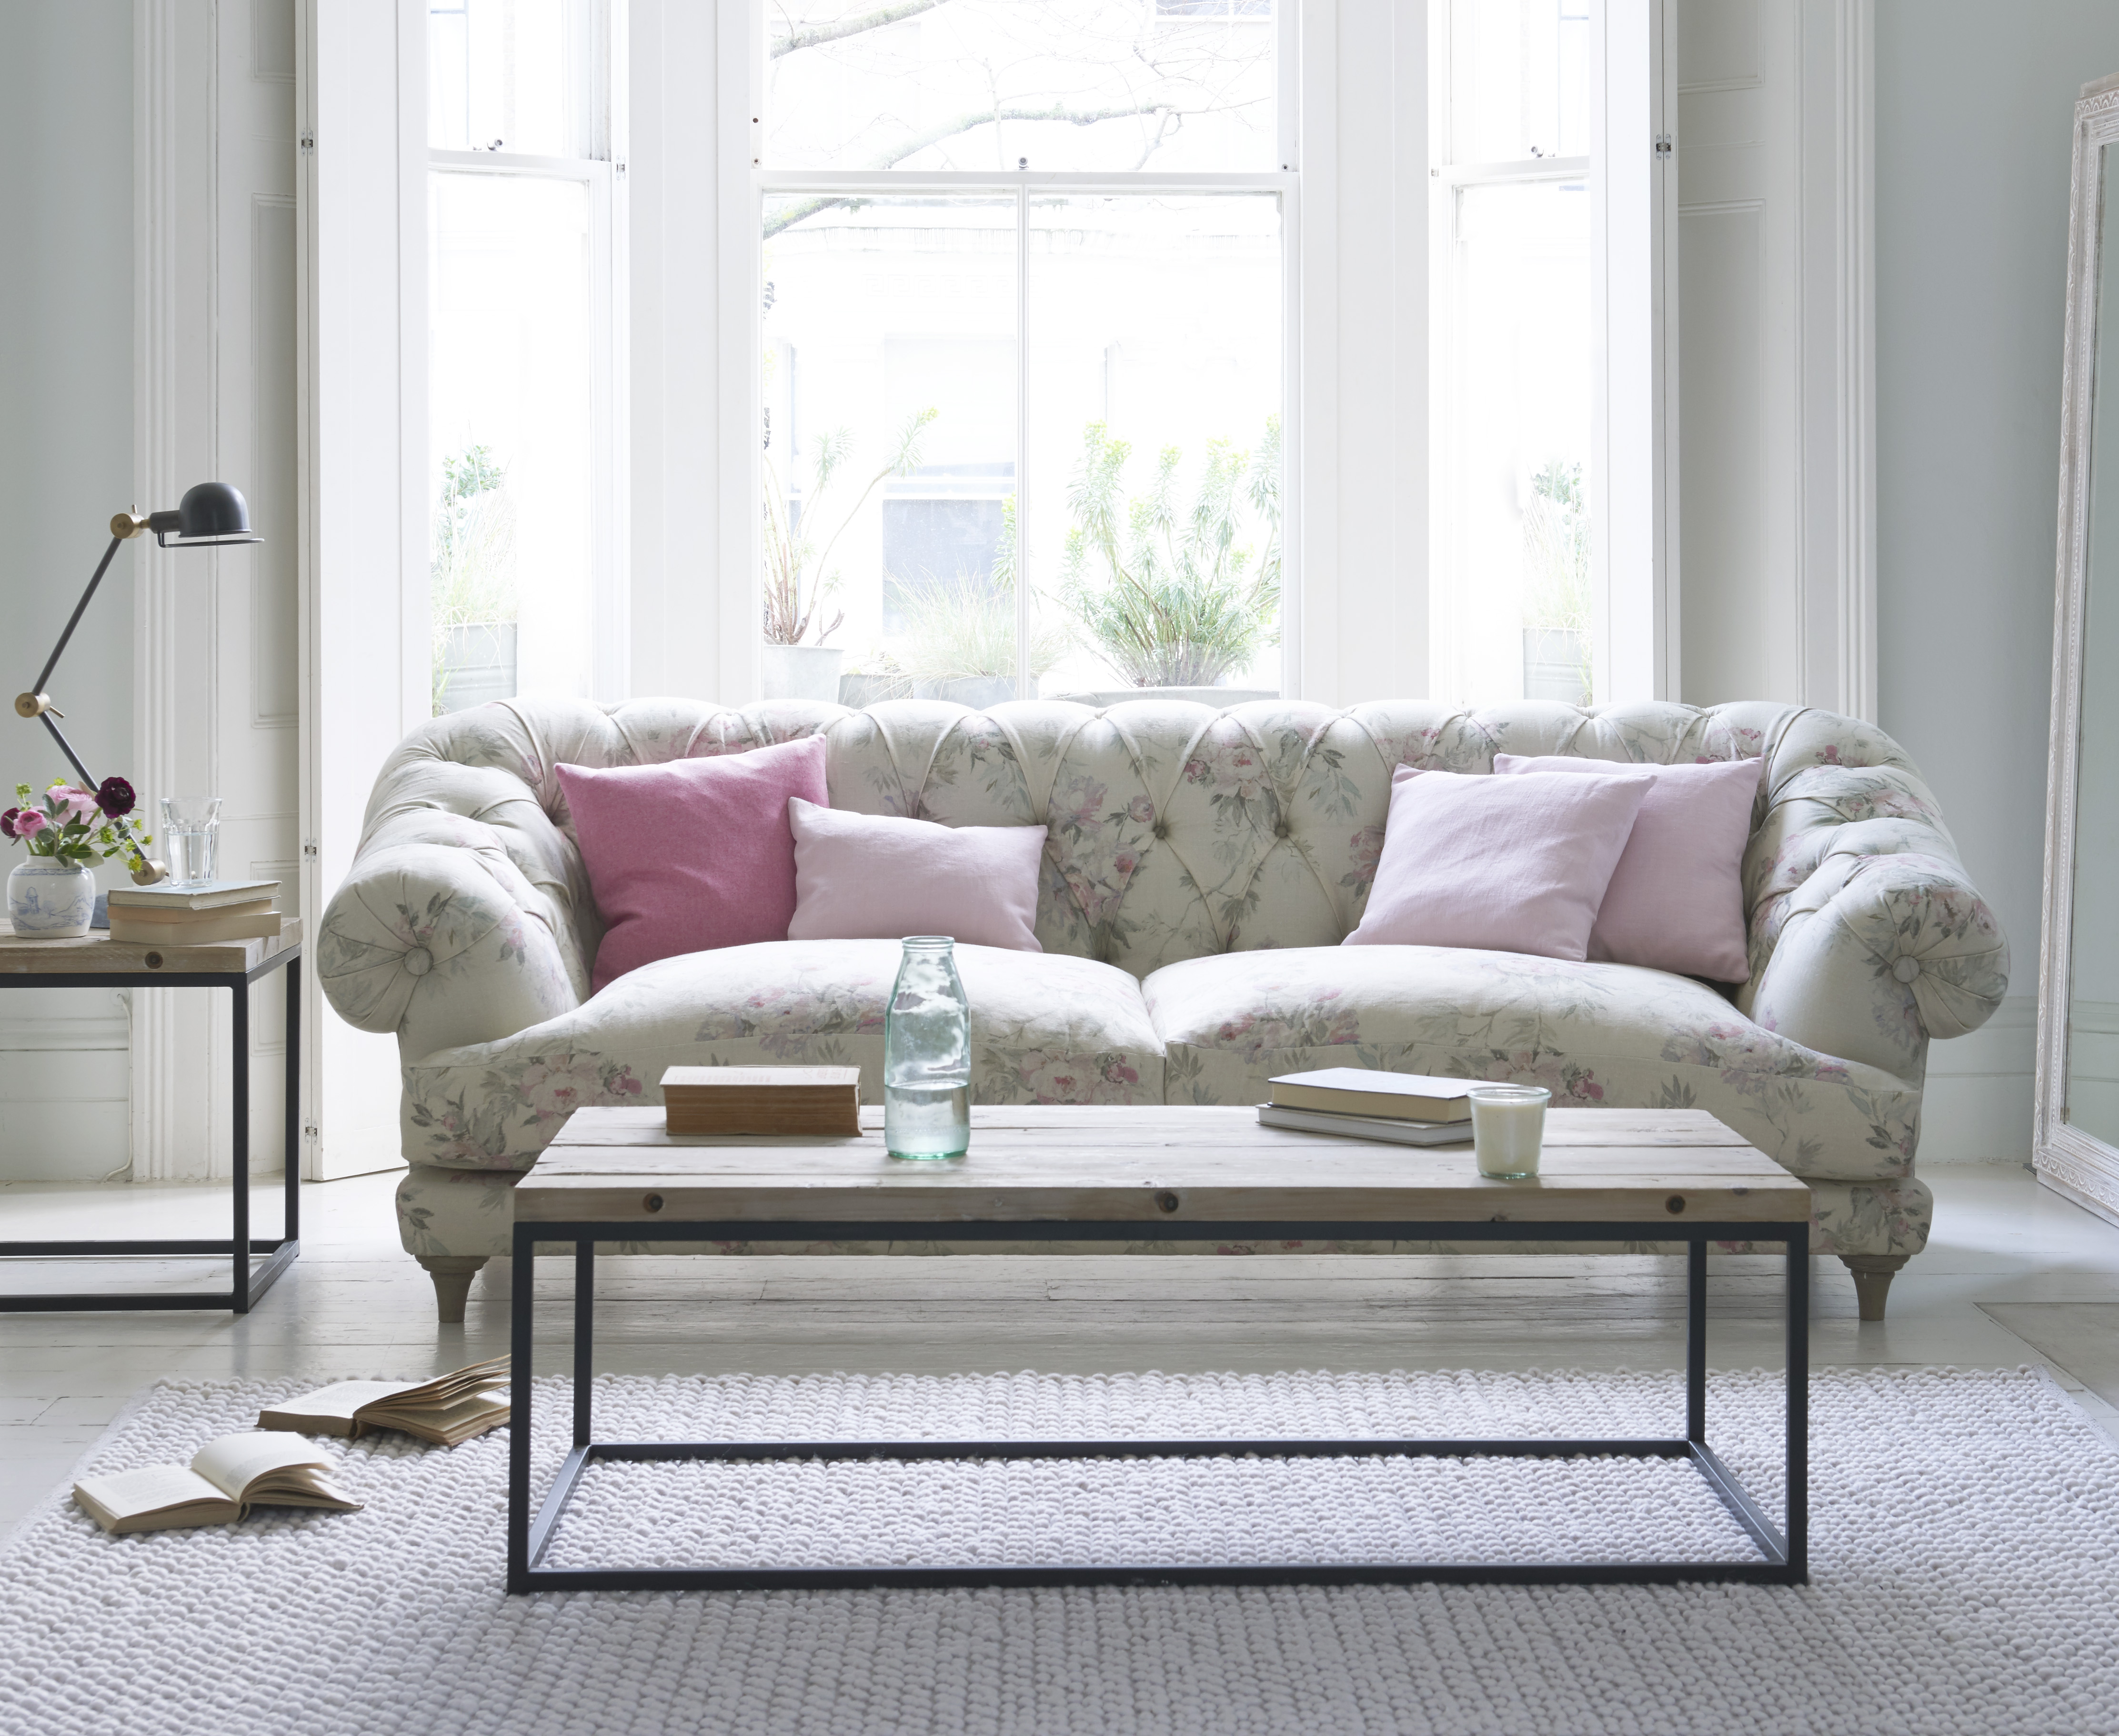 Merveilleux Vintage Rose With Bagsie Sofa